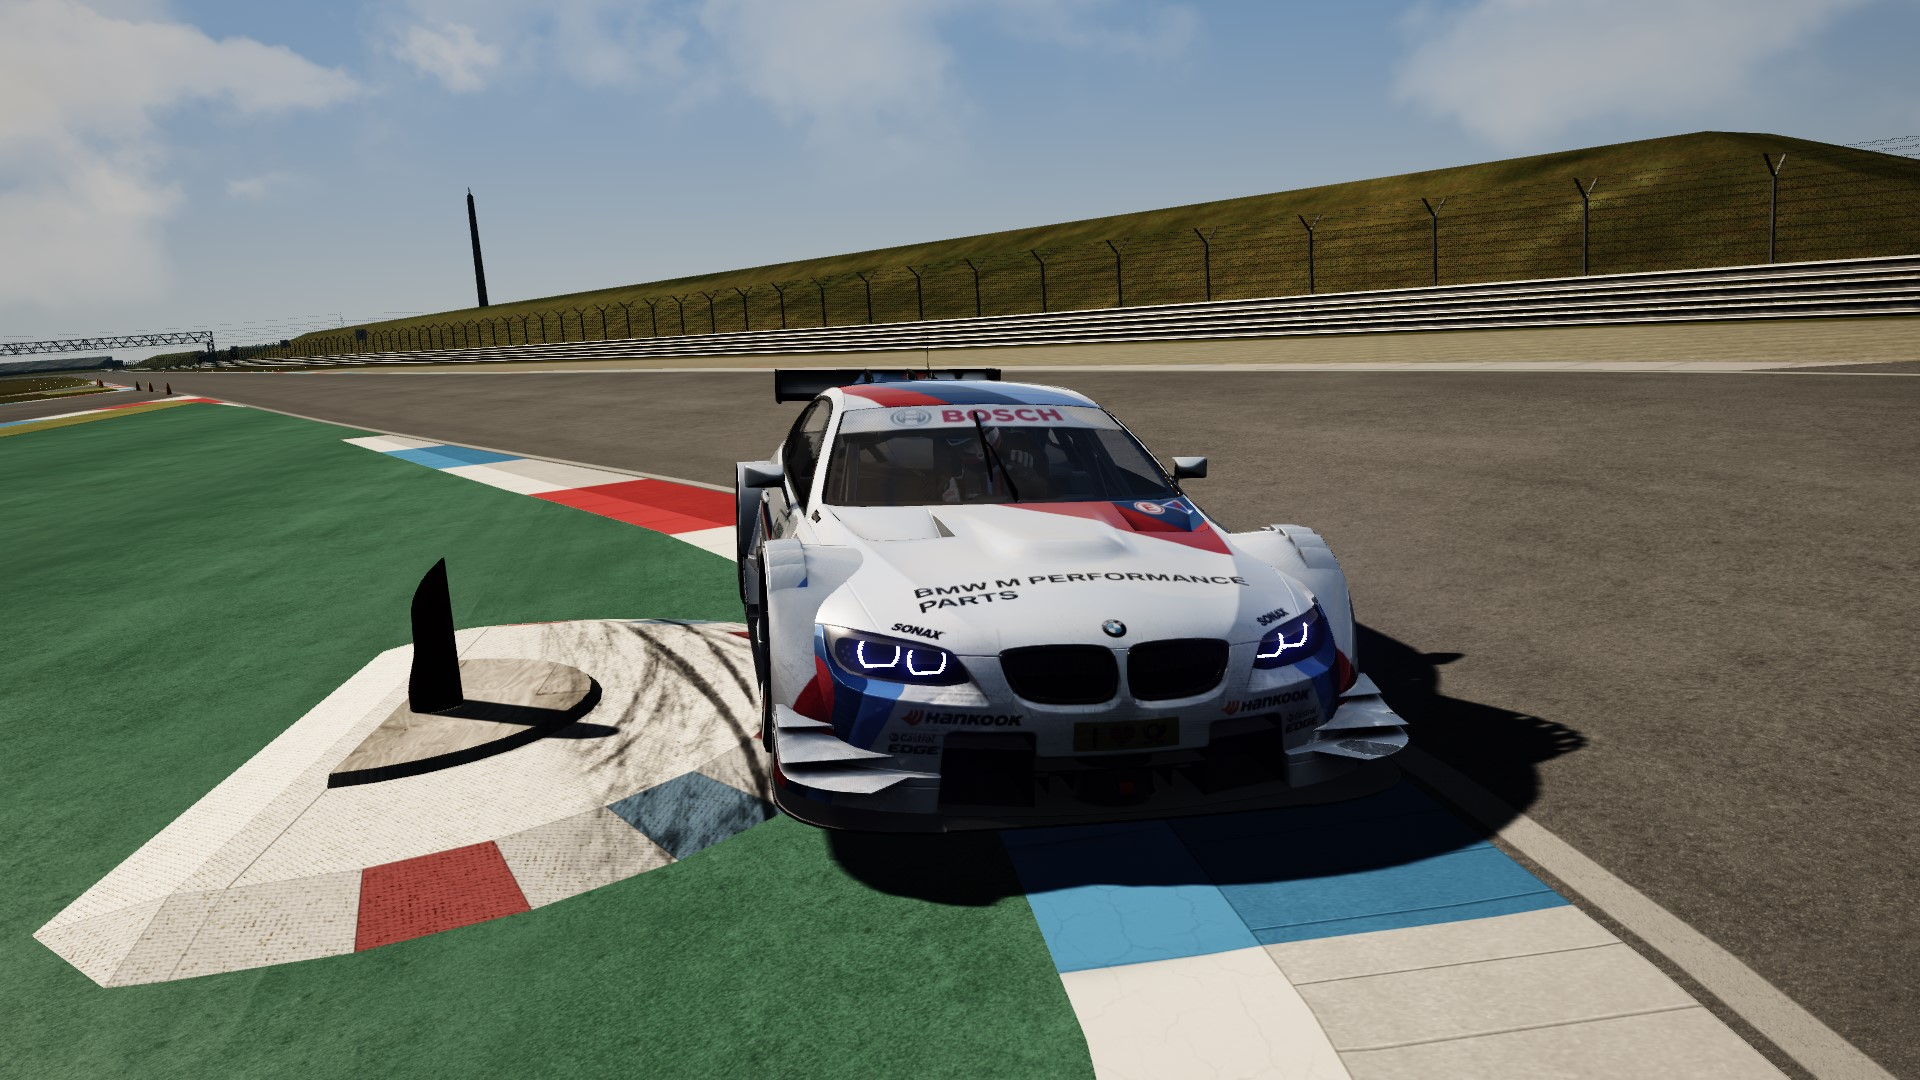 Screenshot_urd_t5_bayro_ttassen_car_v0.5.2_4-1-2015-1-51-33.jpg